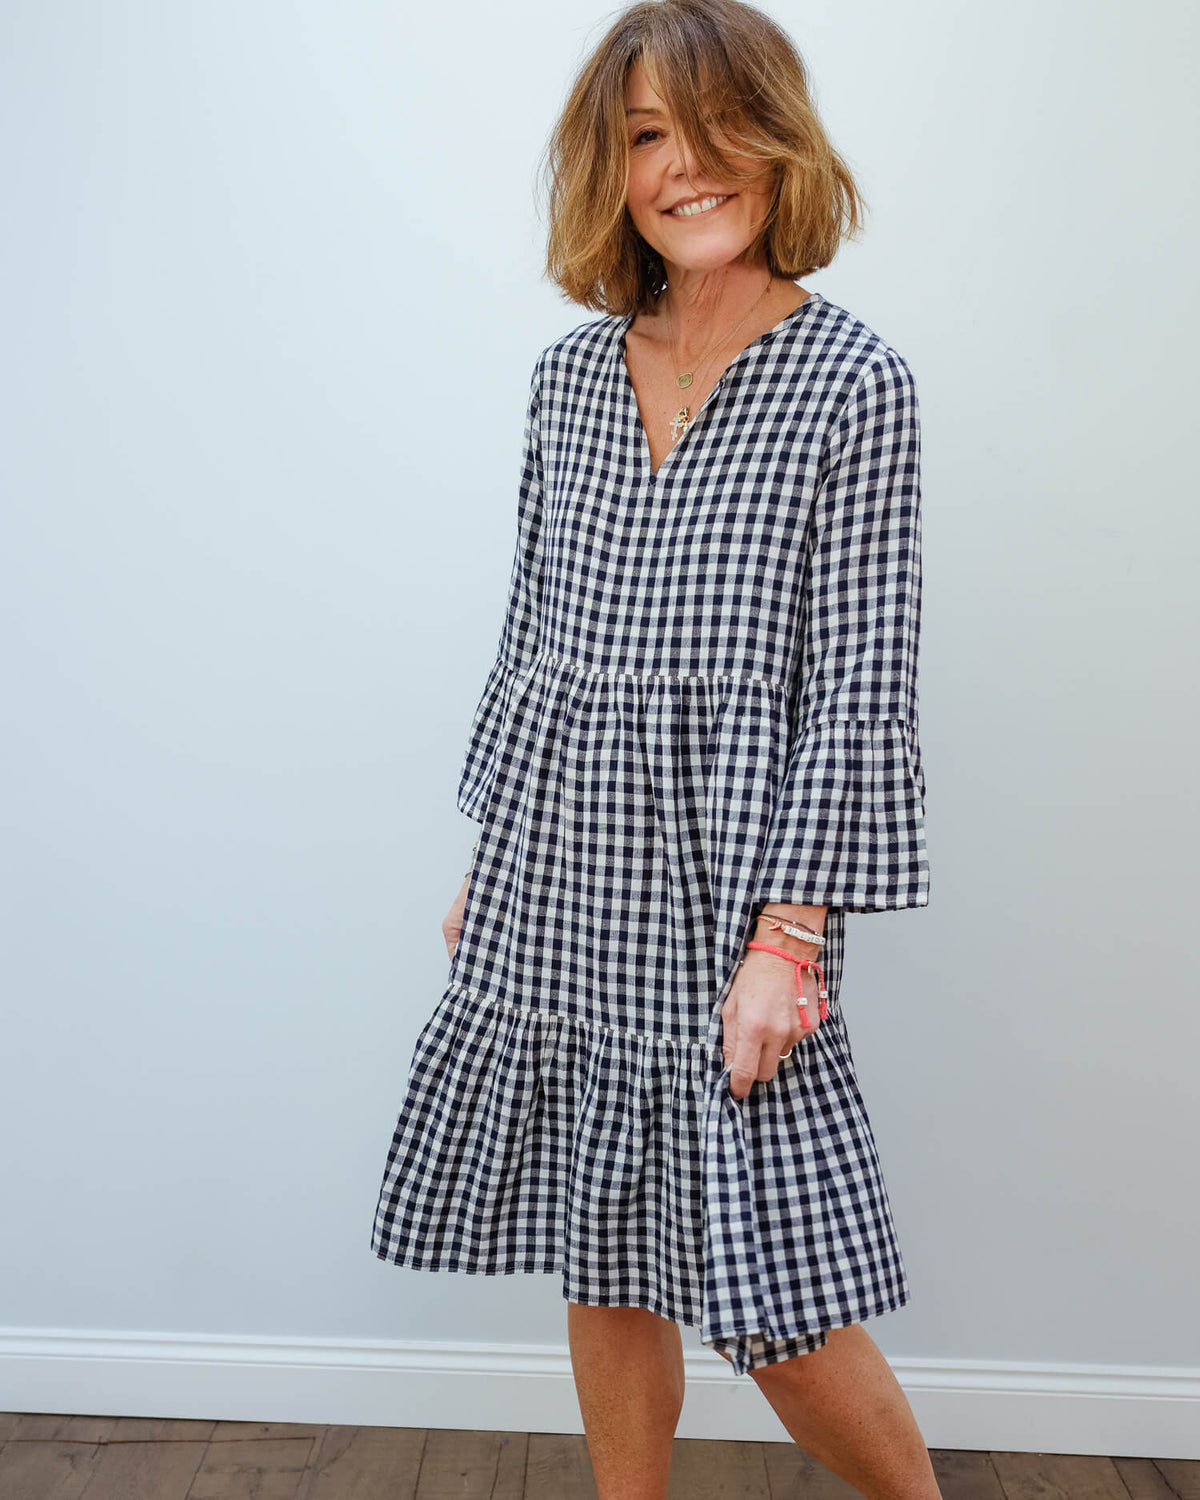 H Rain dress in navy